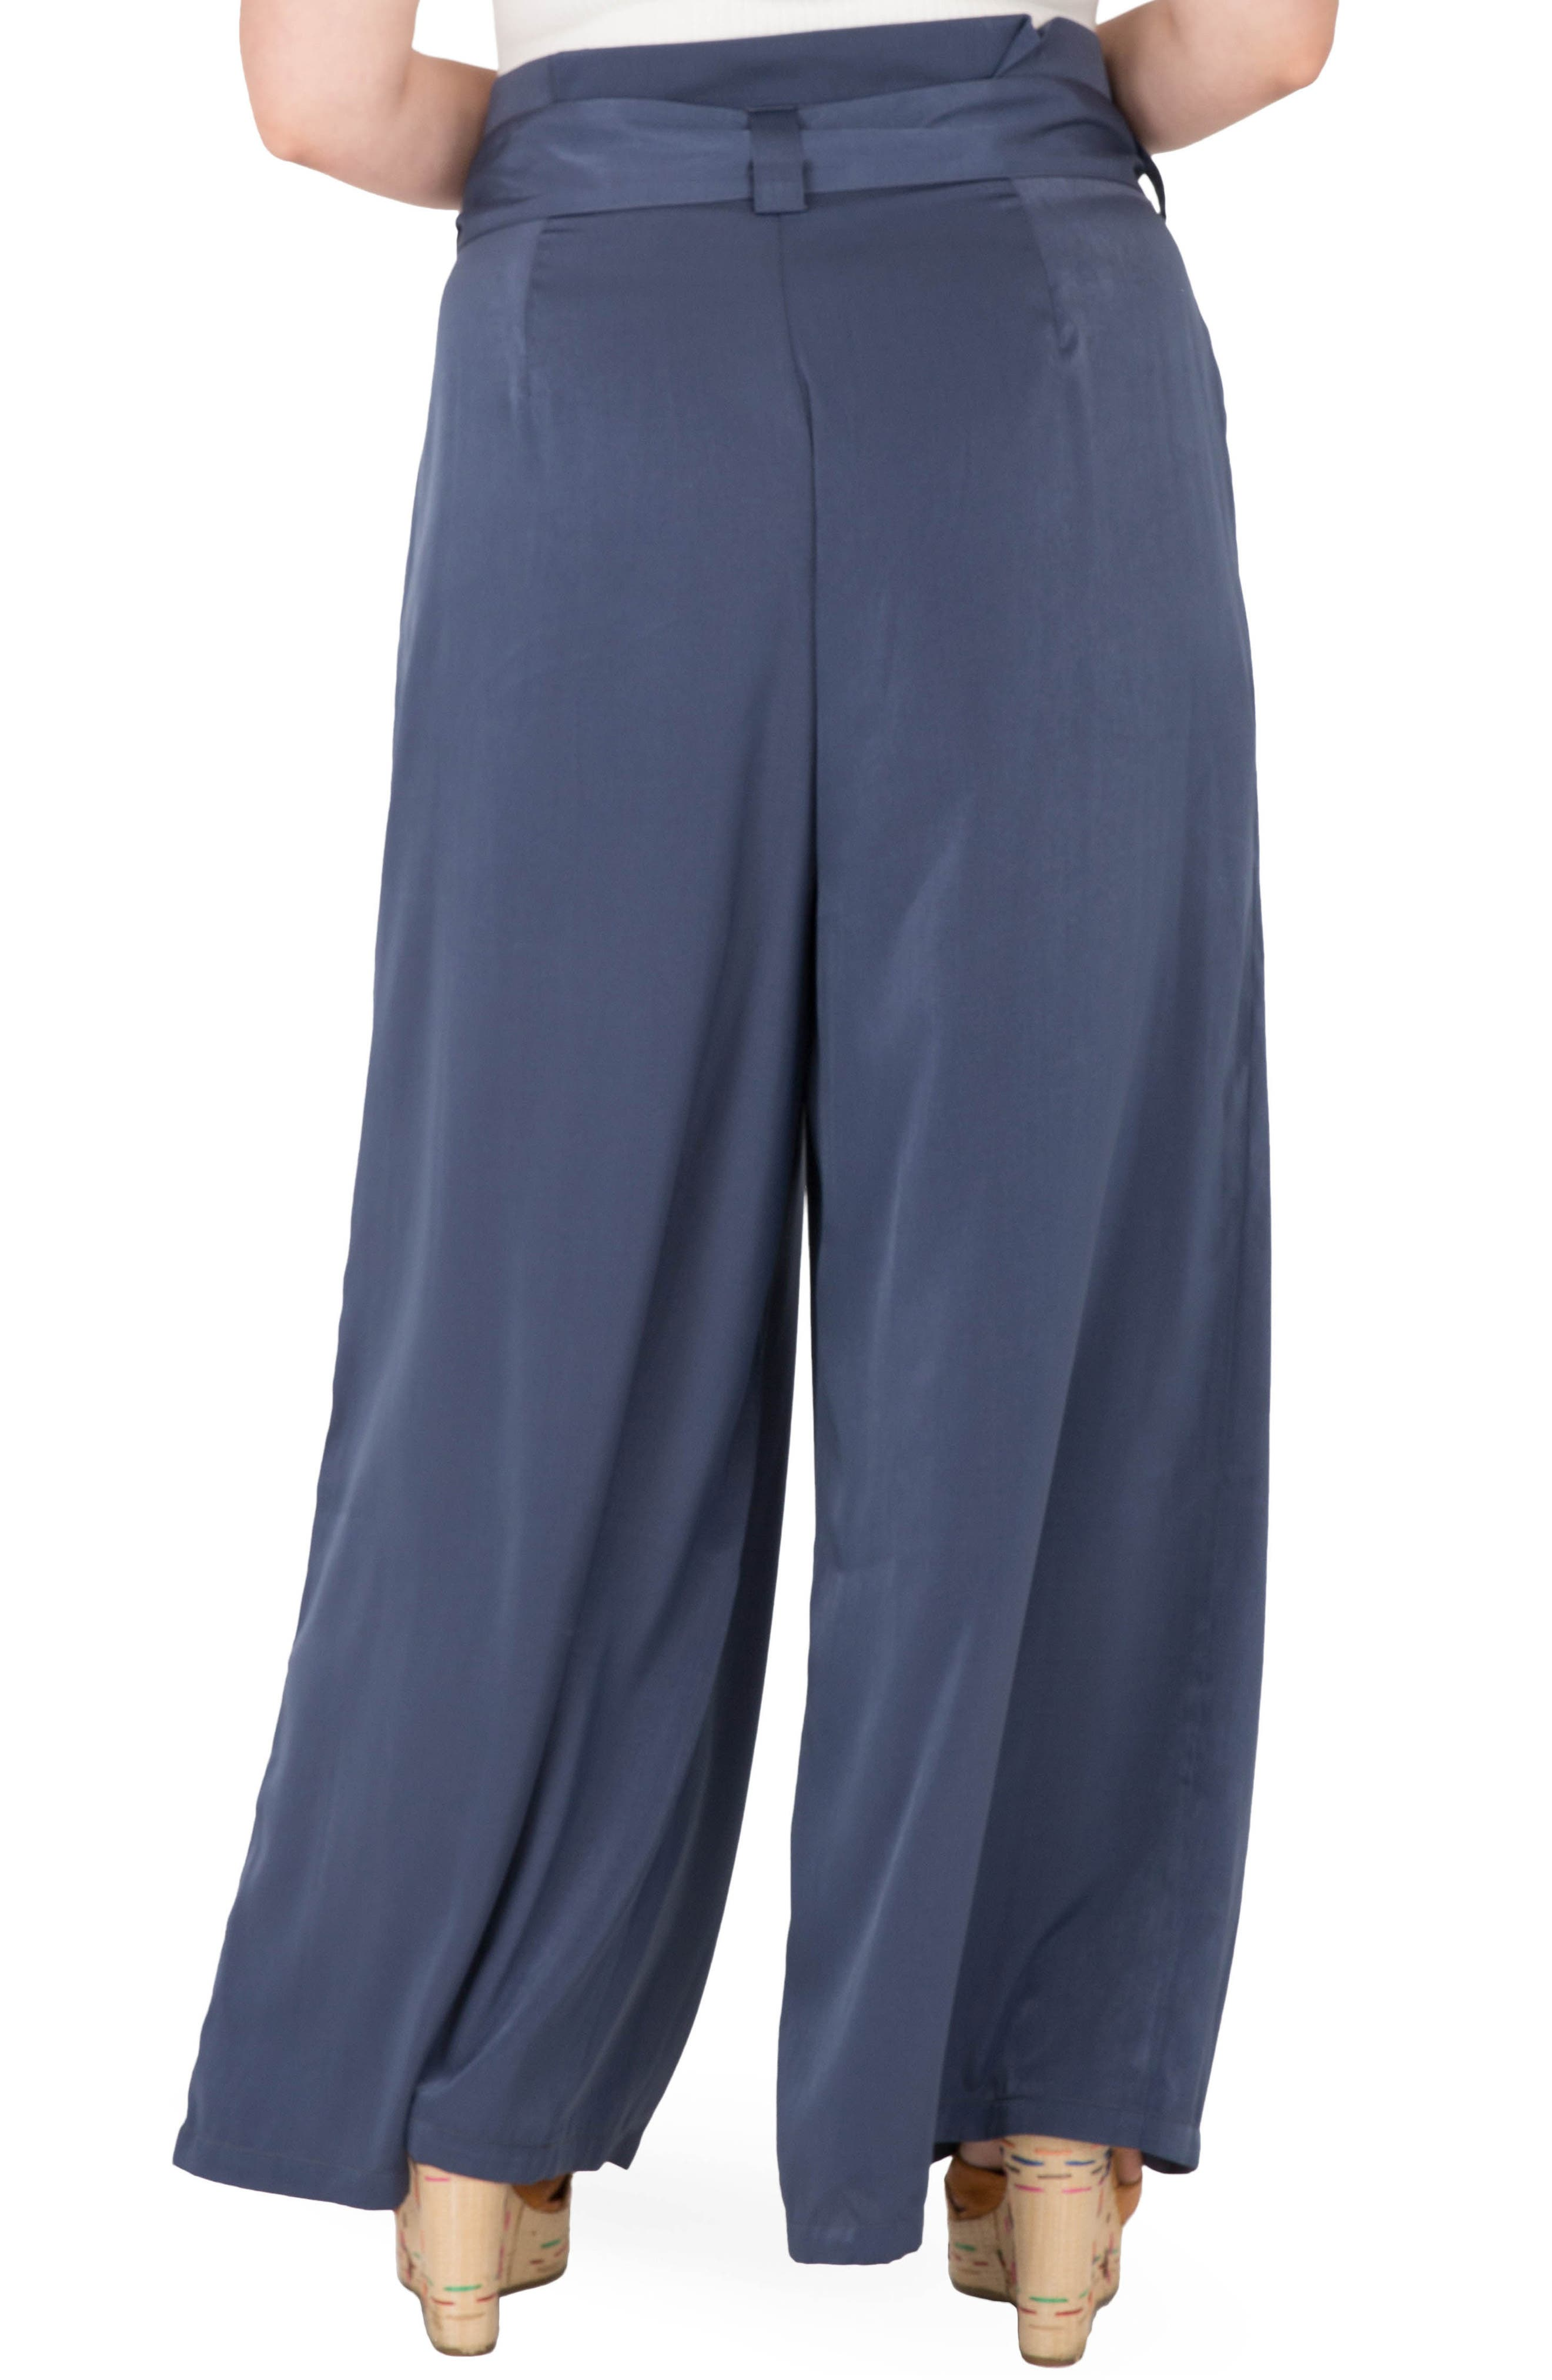 Sue Wide Leg Pants,                             Alternate thumbnail 2, color,                             NAVY